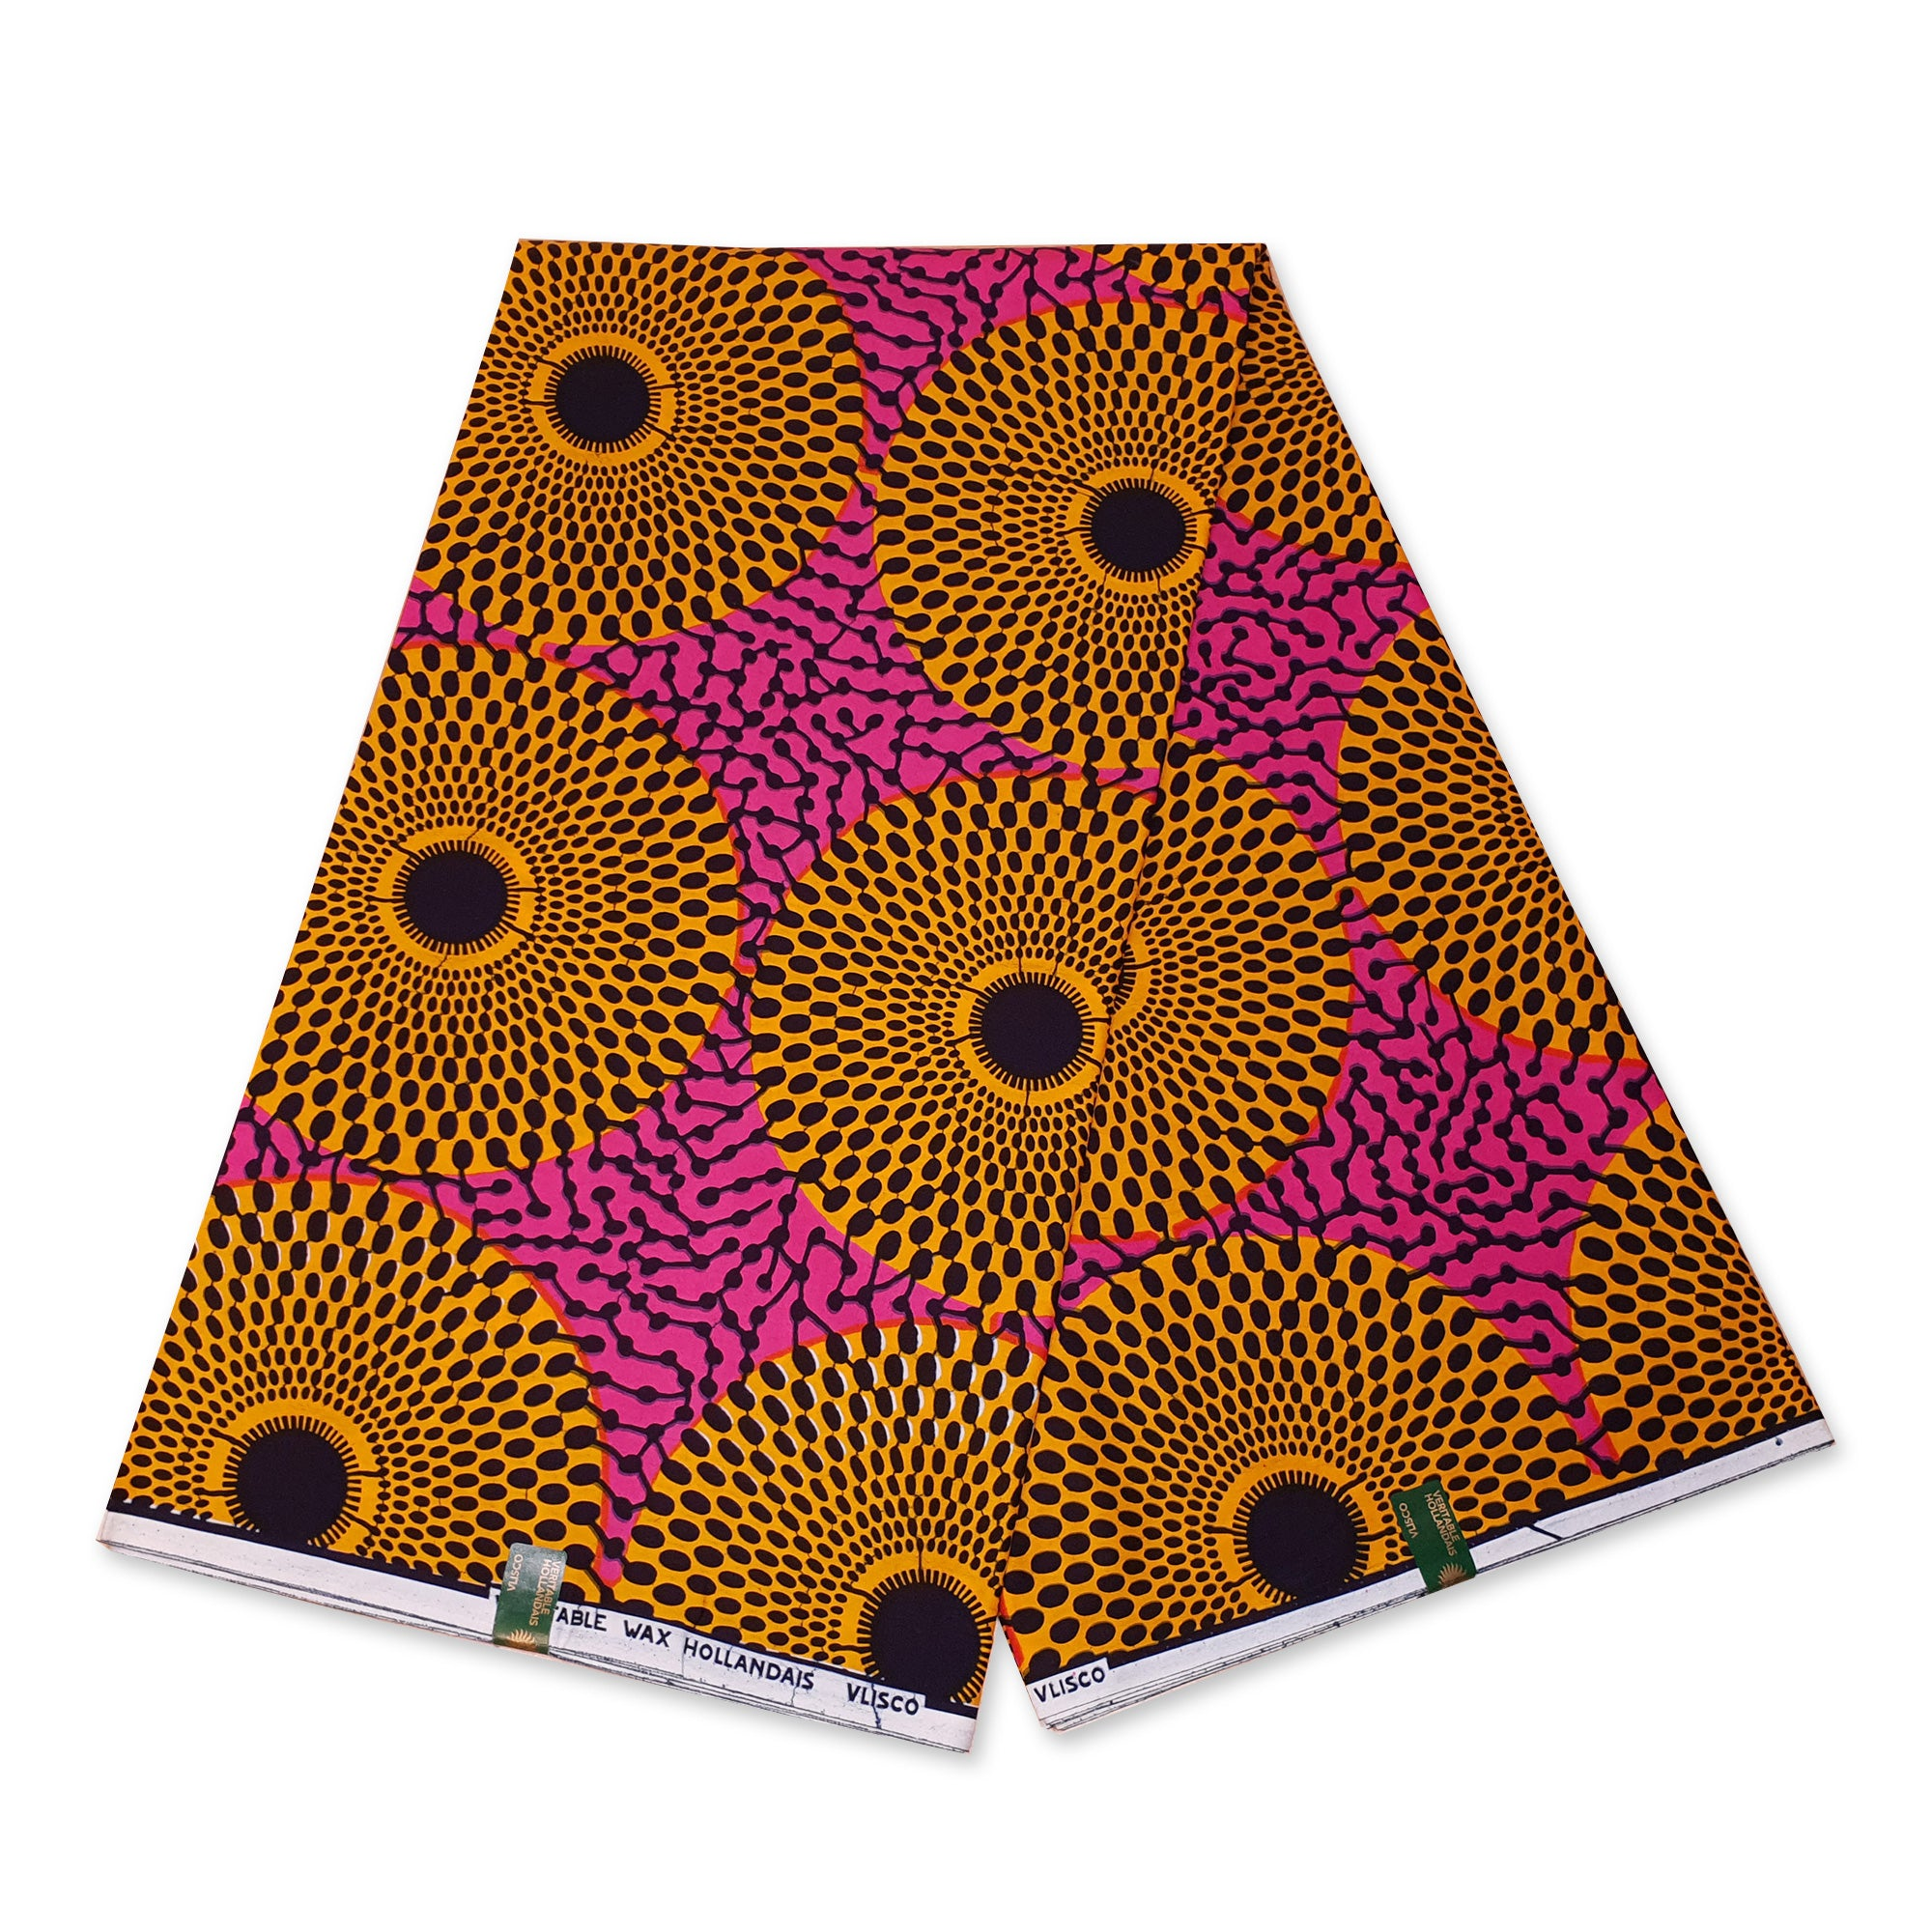 VLISCO Hollandais Wax print fabric - PINK / YELLOW RECORD